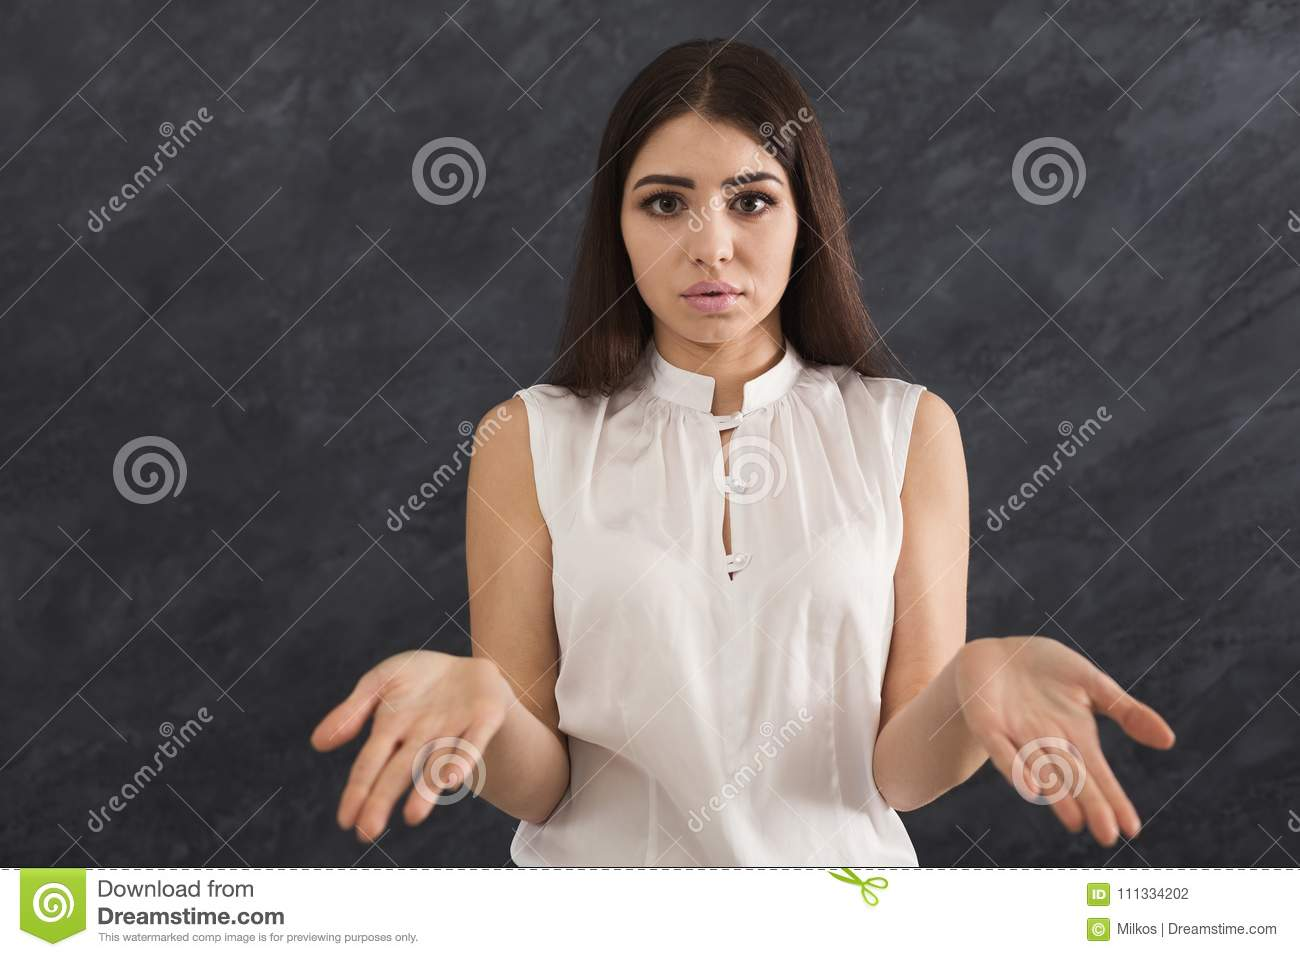 Desparate Woman Making Helpless Gesture With Her Hands Stock Photo Image Of Ambiguous Actor 111334202 Eezee conceptz global presents new signee, gift ugochukwu christopher popularly known as minister guc in the official video for desperate. dreamstime com